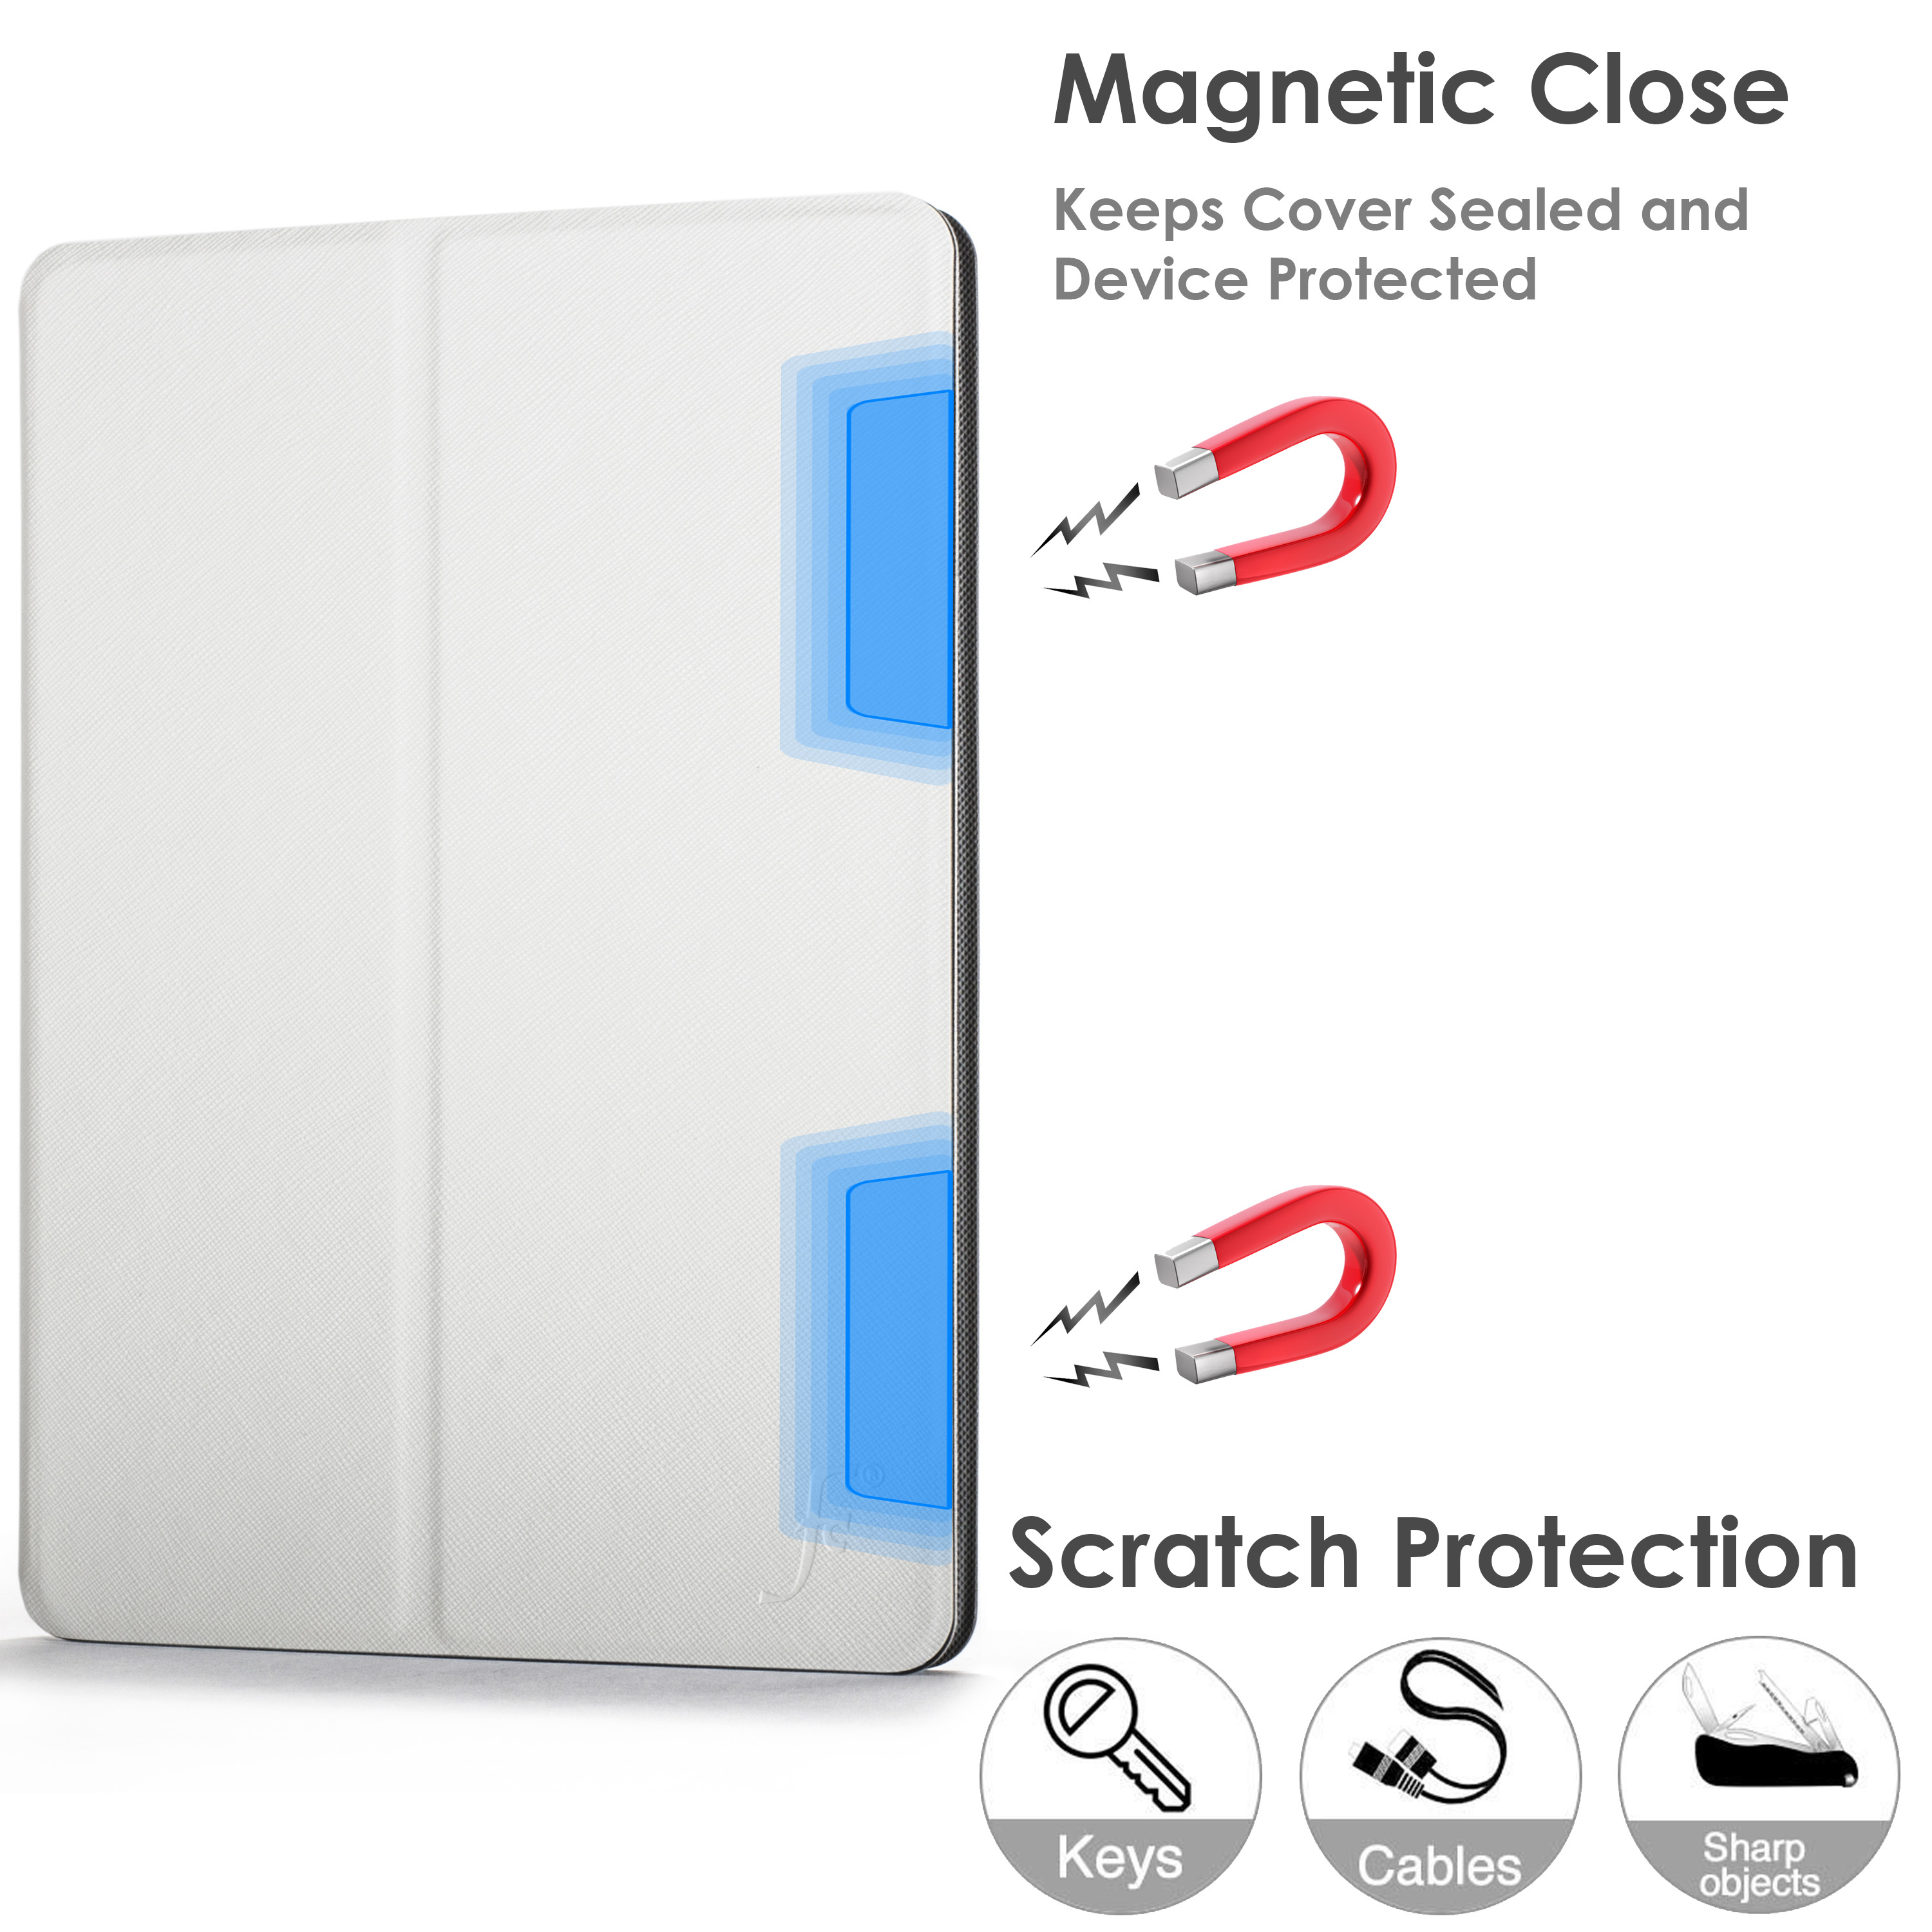 miniature 103 - Samsung Galaxy Tab A 10.1 2019 Étui Magnétique Protection & Support + Stylet